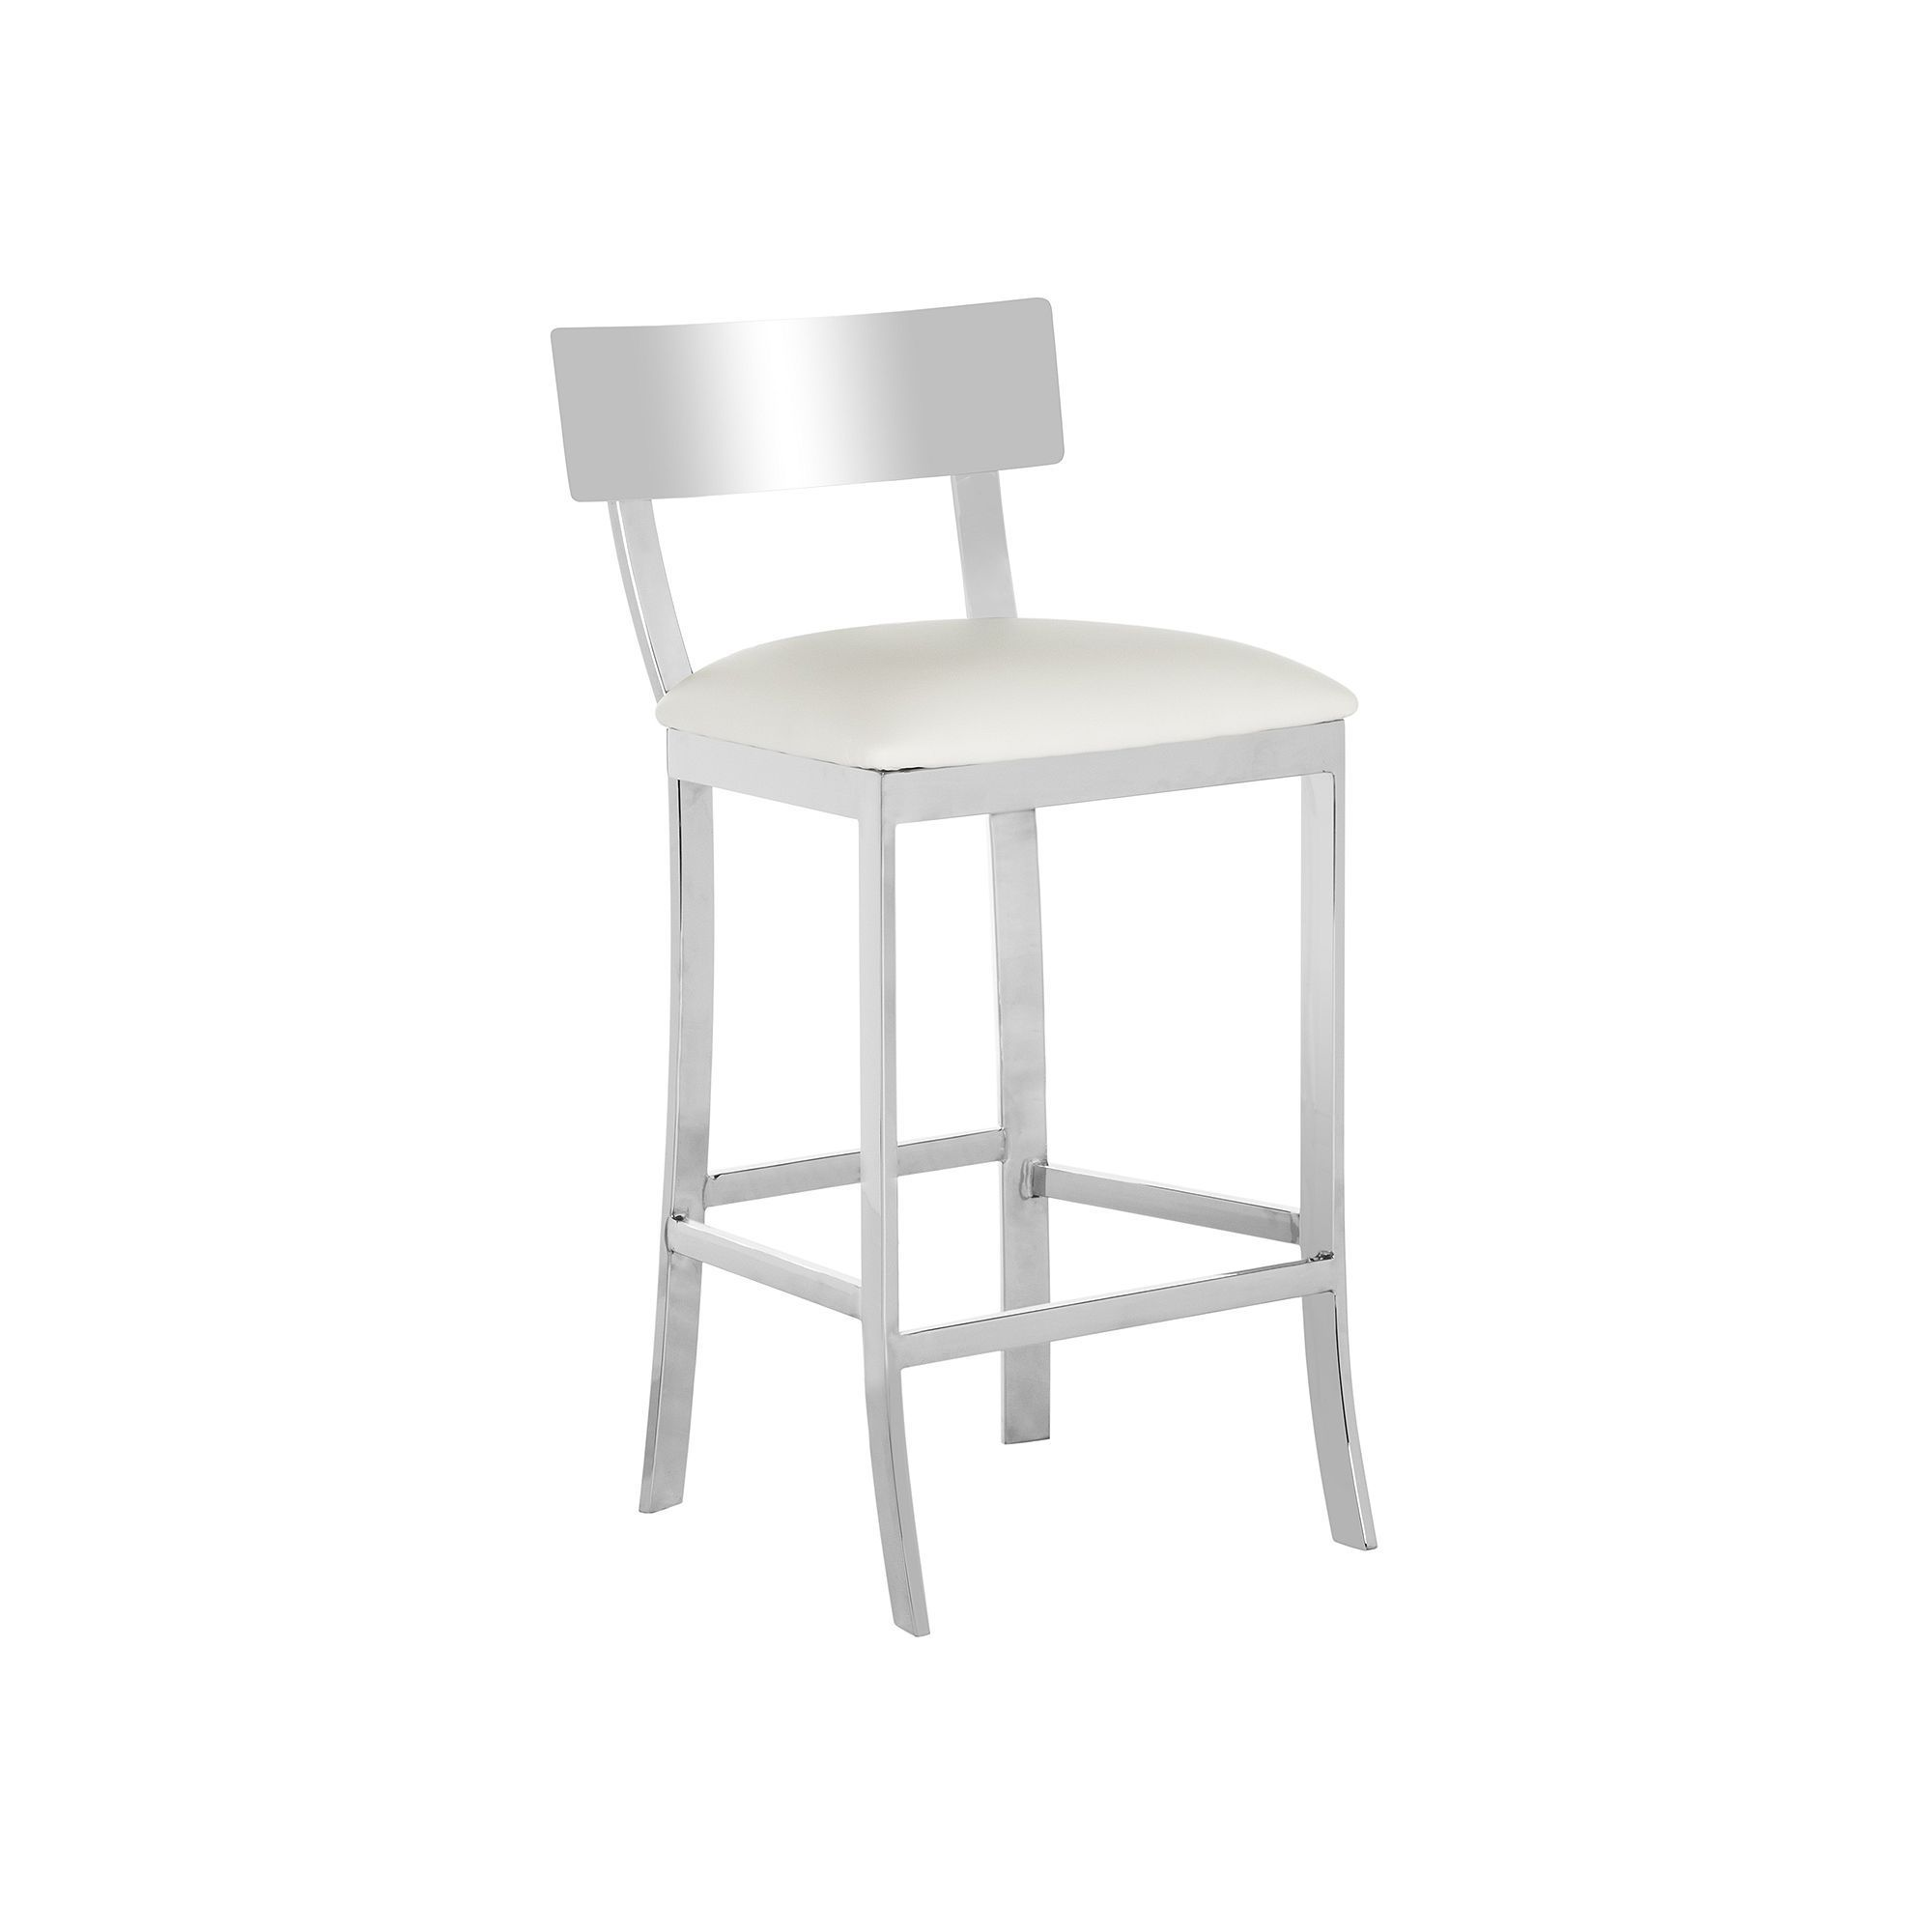 Safavieh Stainless Steel Counter Stool White With Images Leather Counter Stools Steel Bar